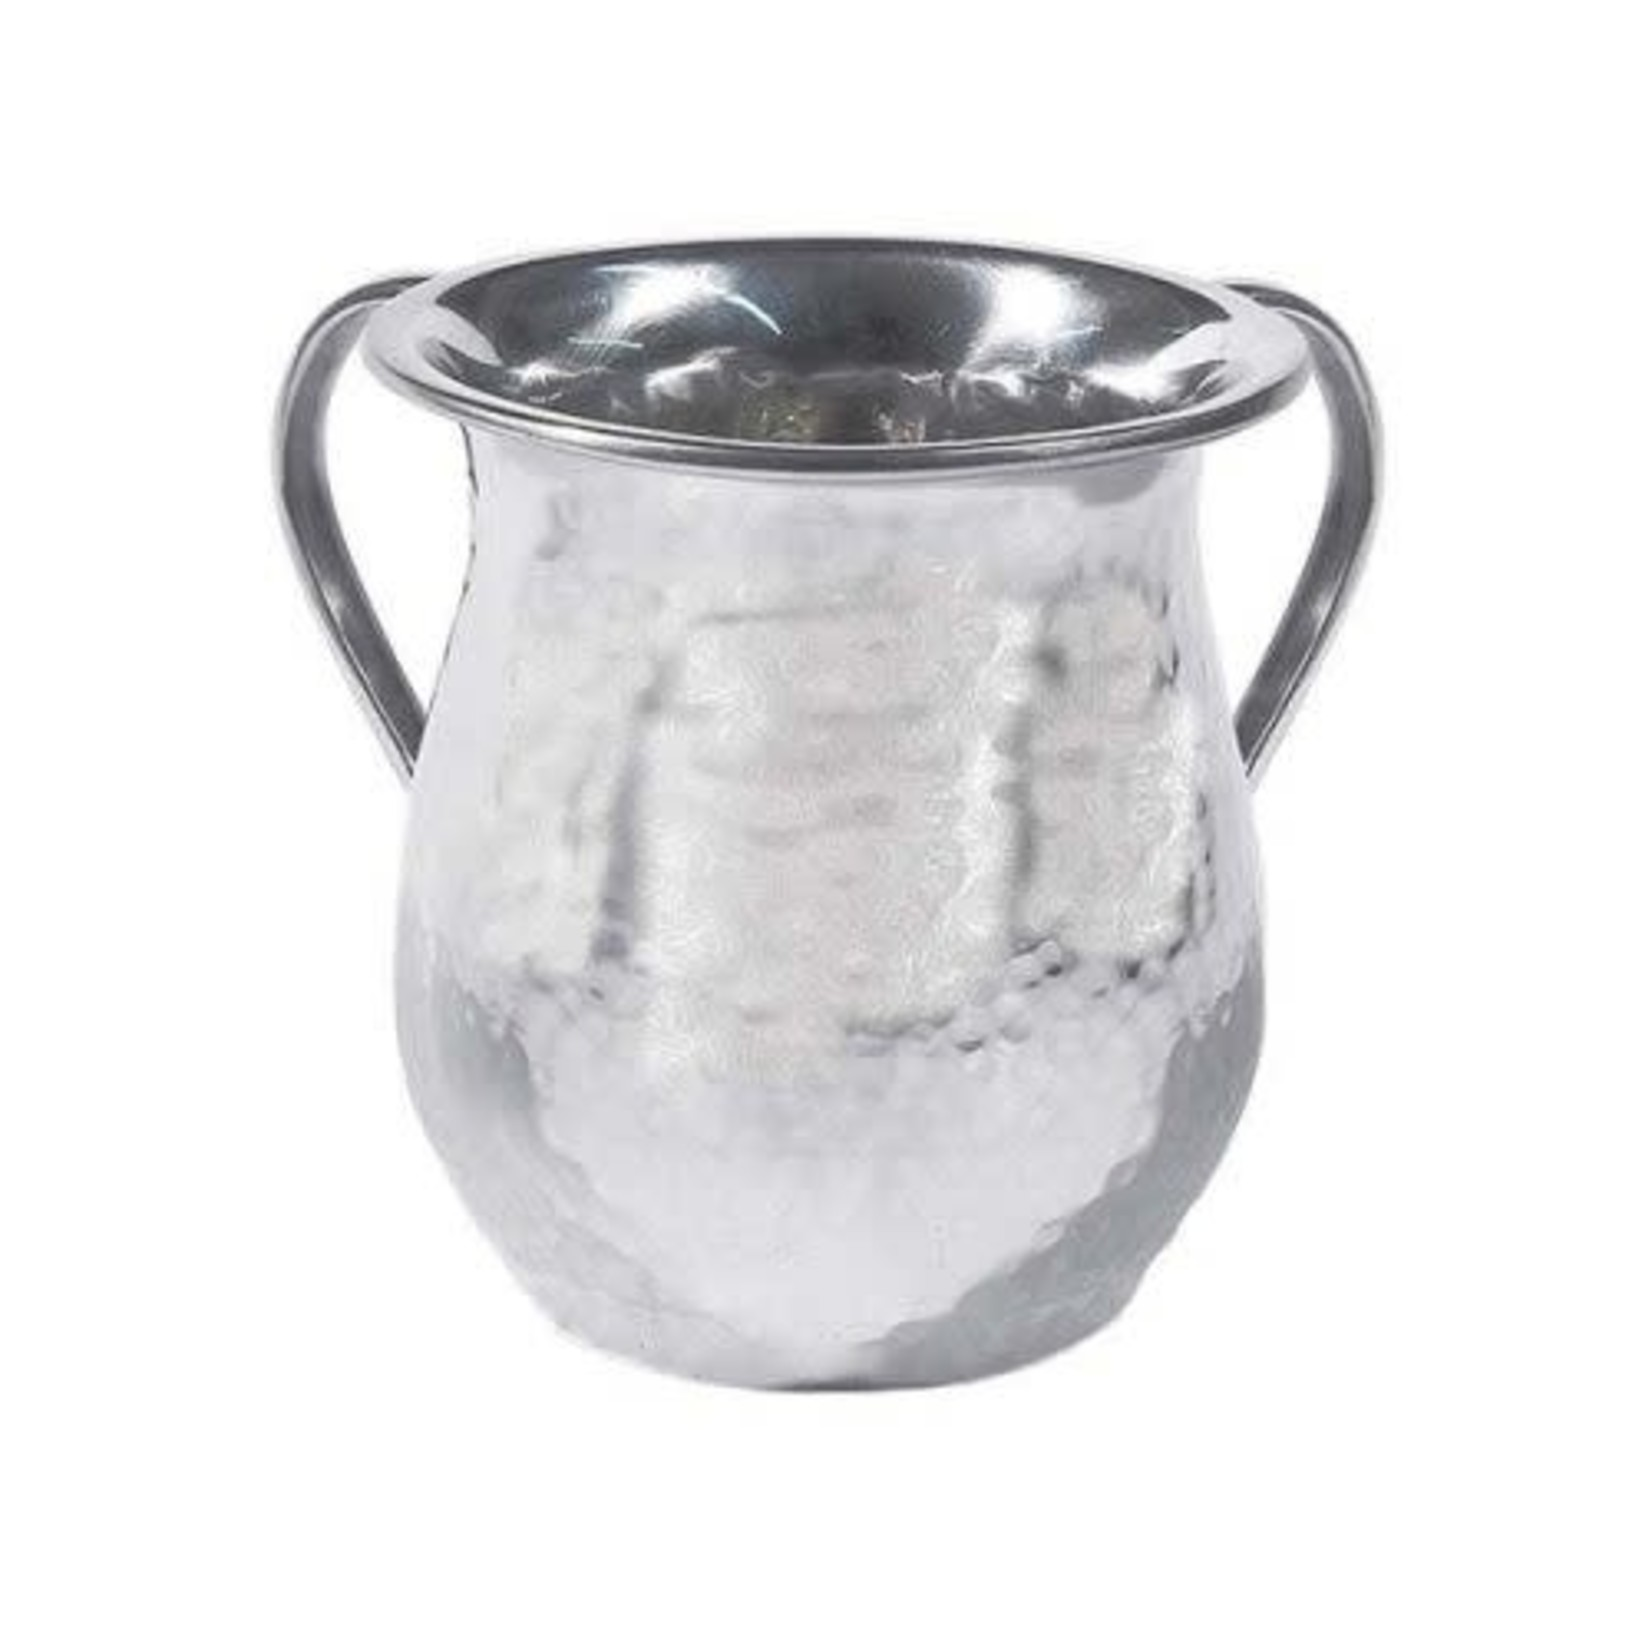 Washing Cup, Stainless Steel